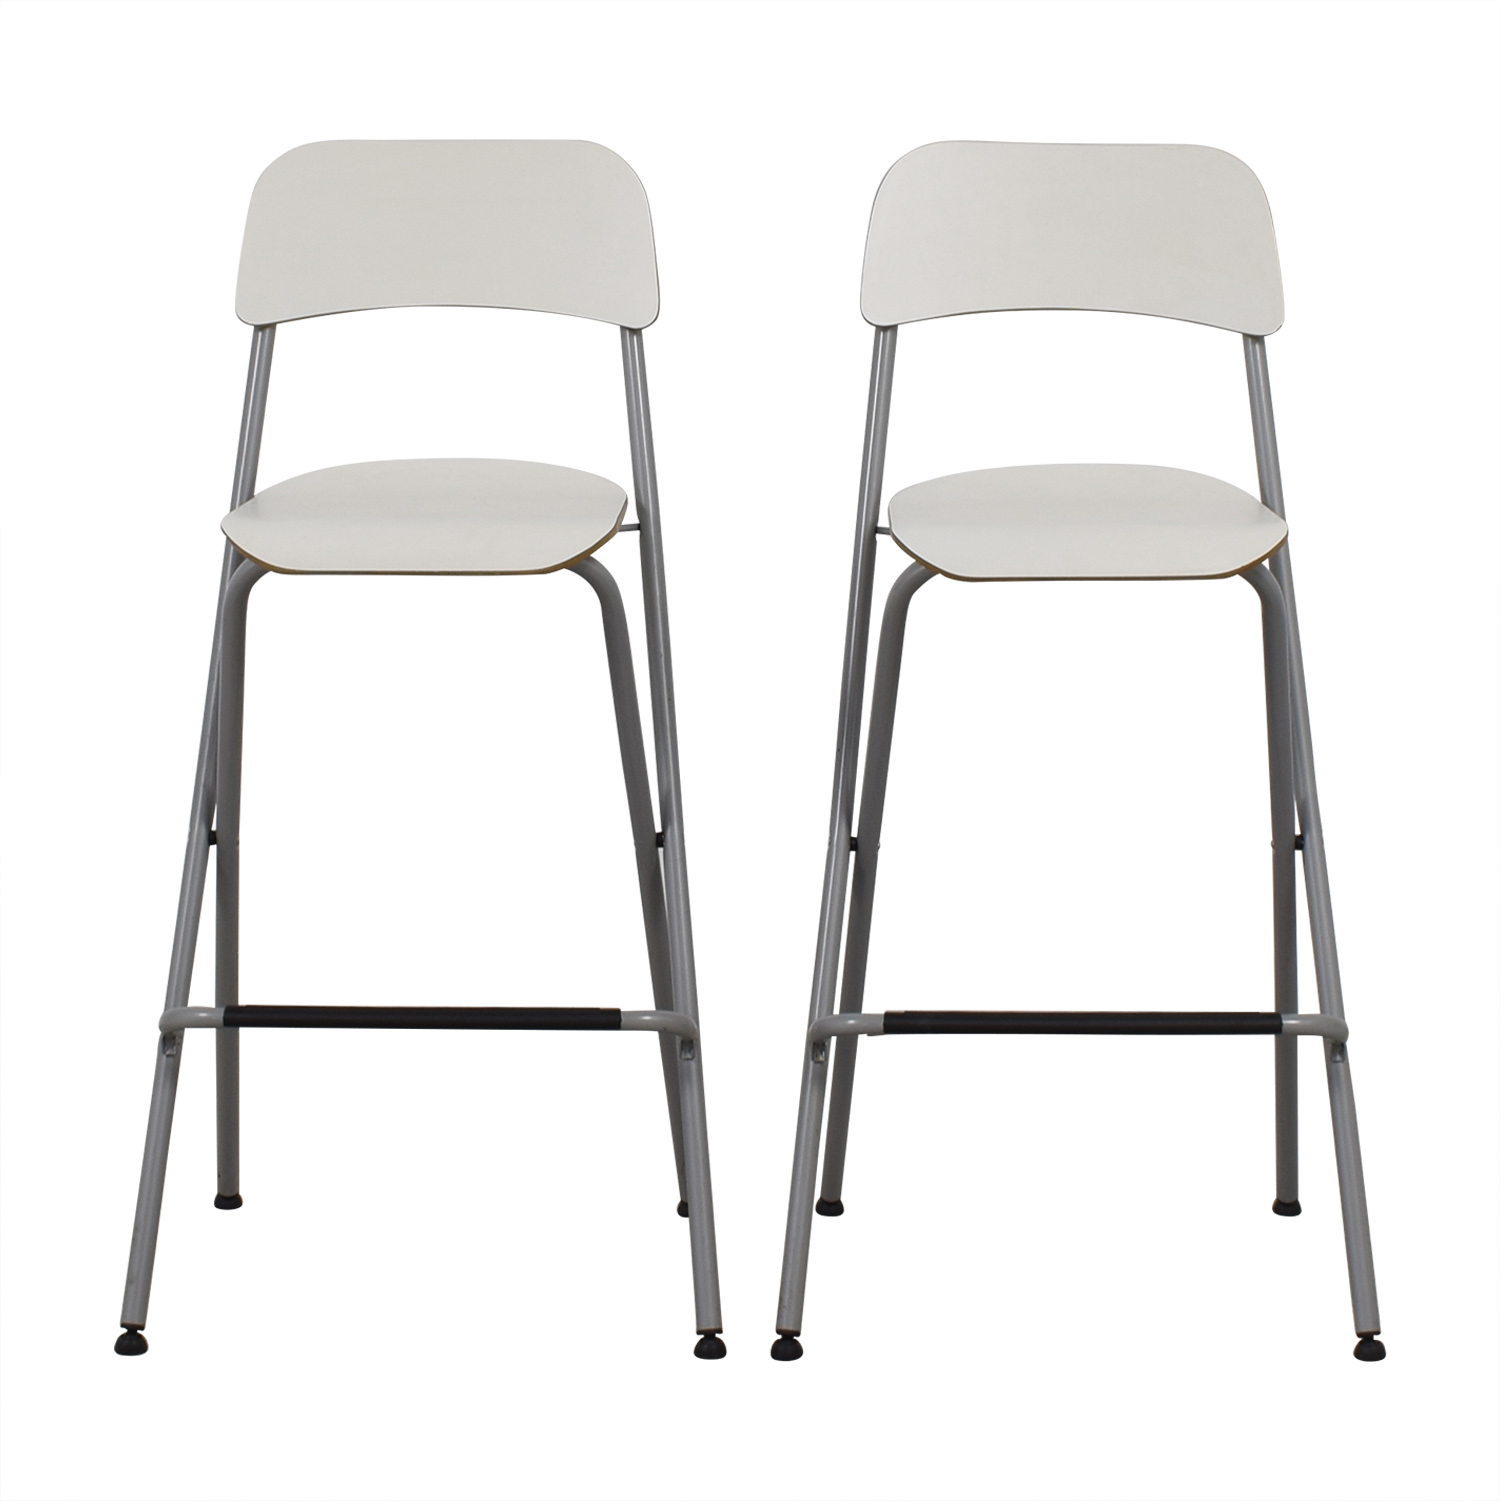 73 Off Ikea Ikea White Bar Stools Chairs